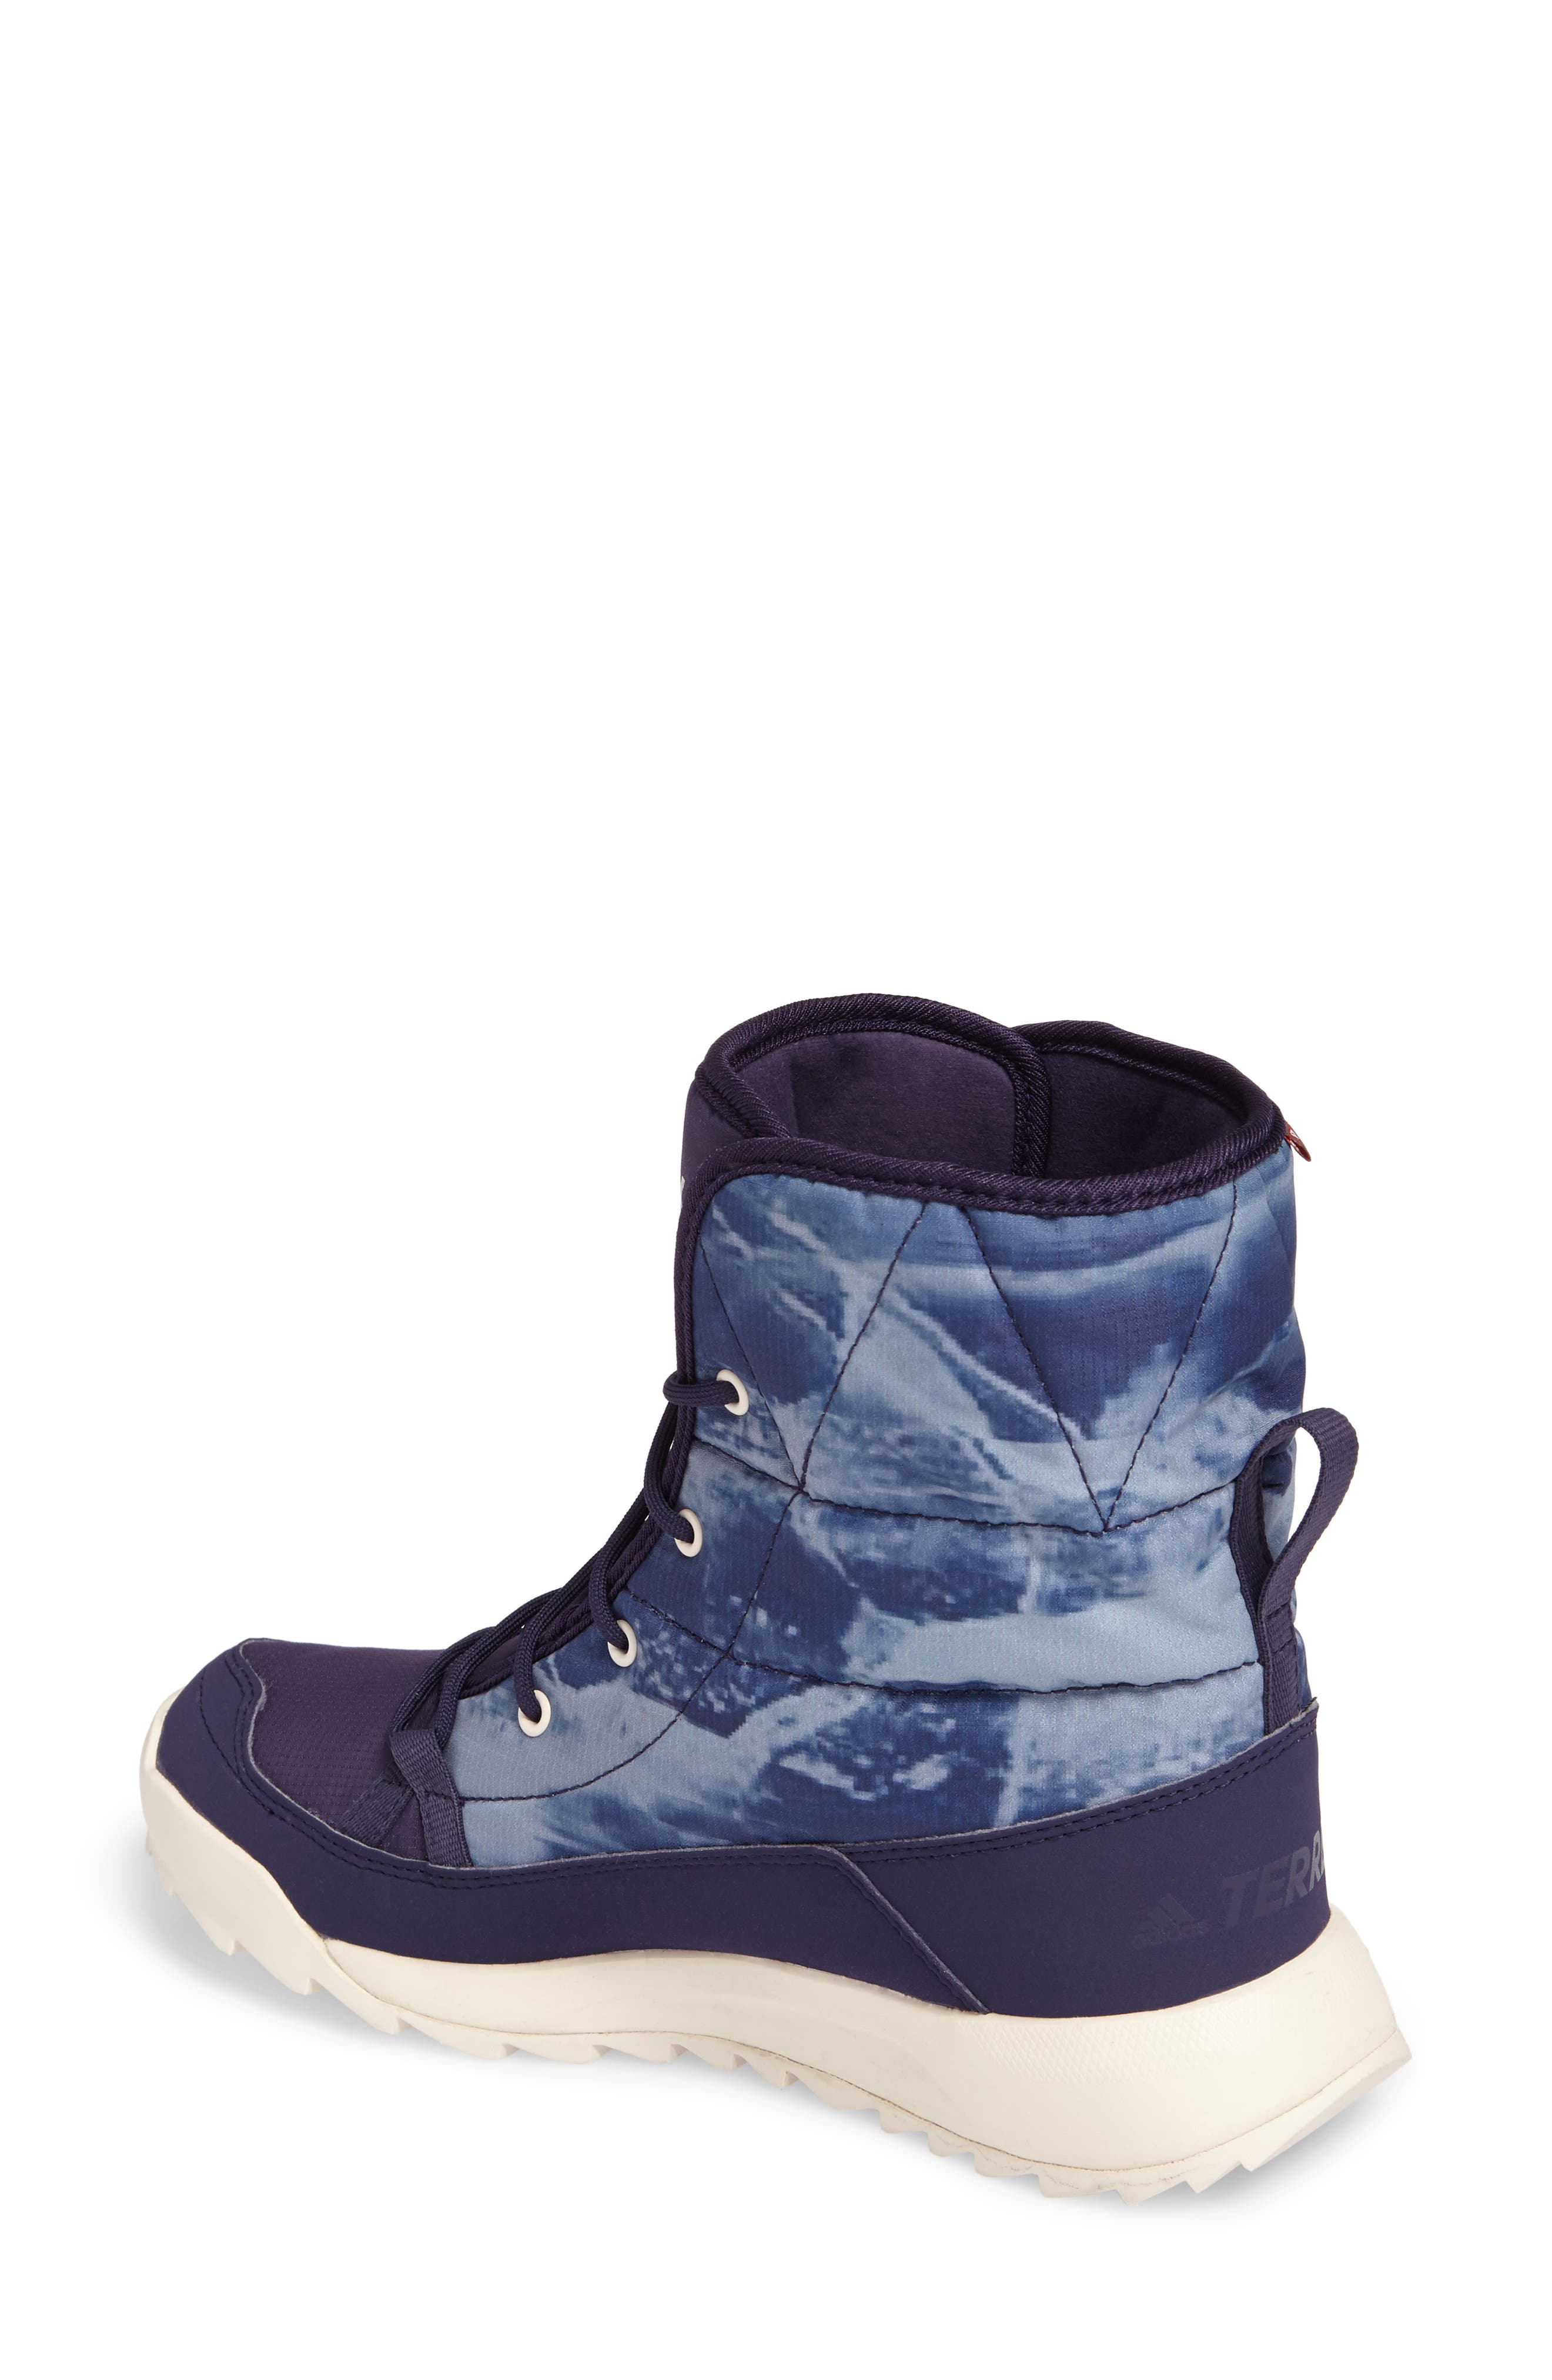 Alternate Image 2  - adidas Terrex Choleah Waterproof Boot (Women)